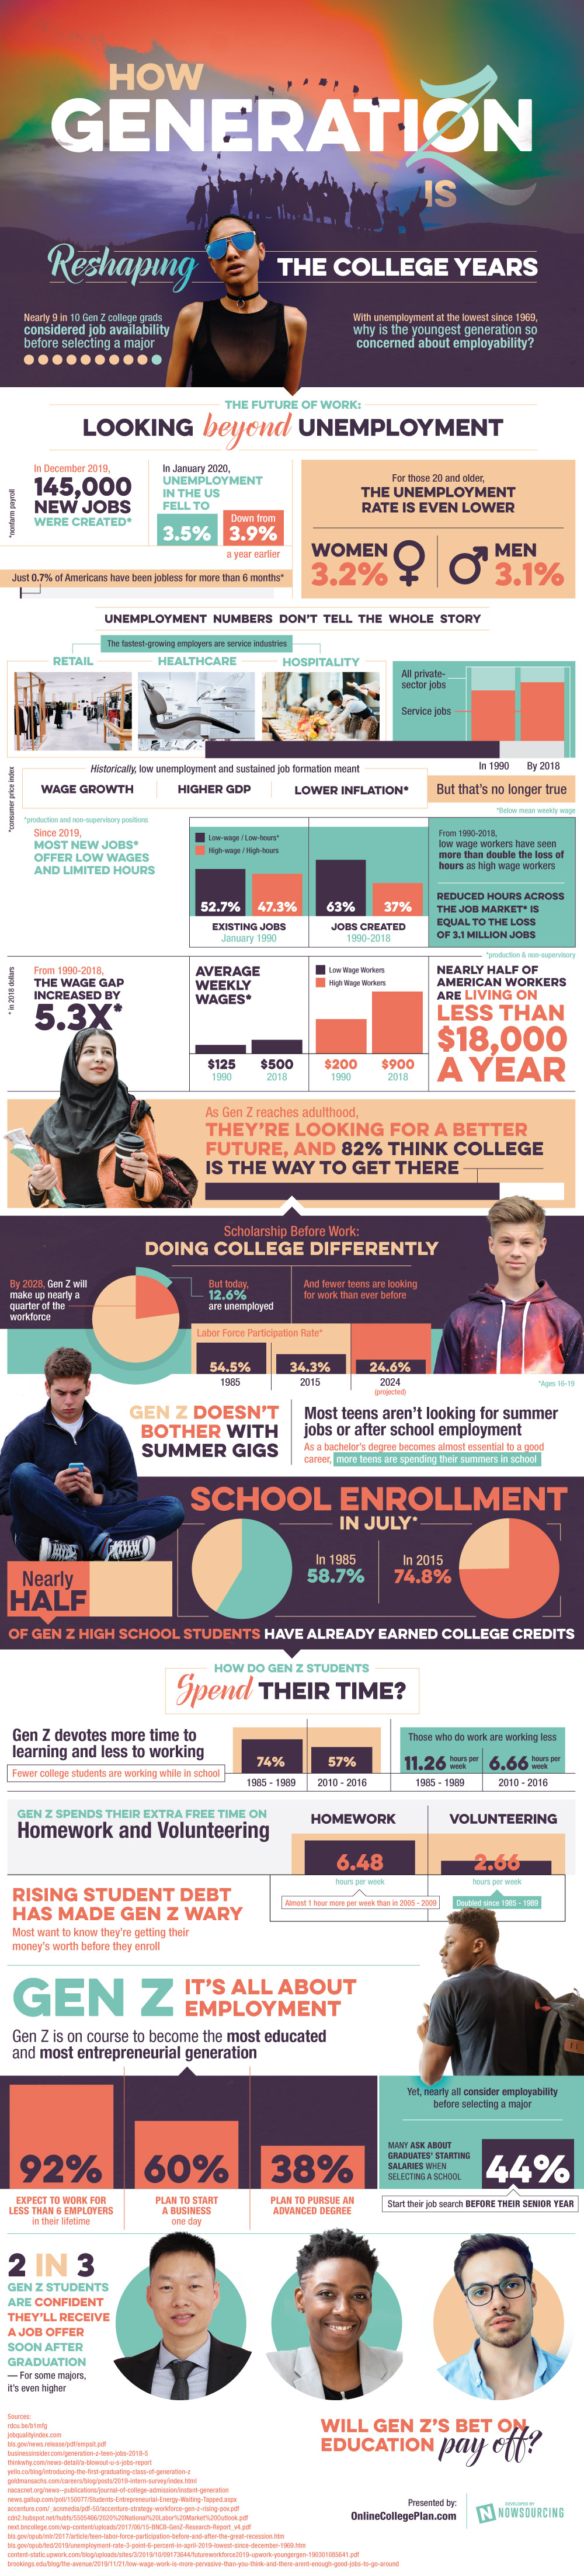 Gen Z Reshaping College (infographic)